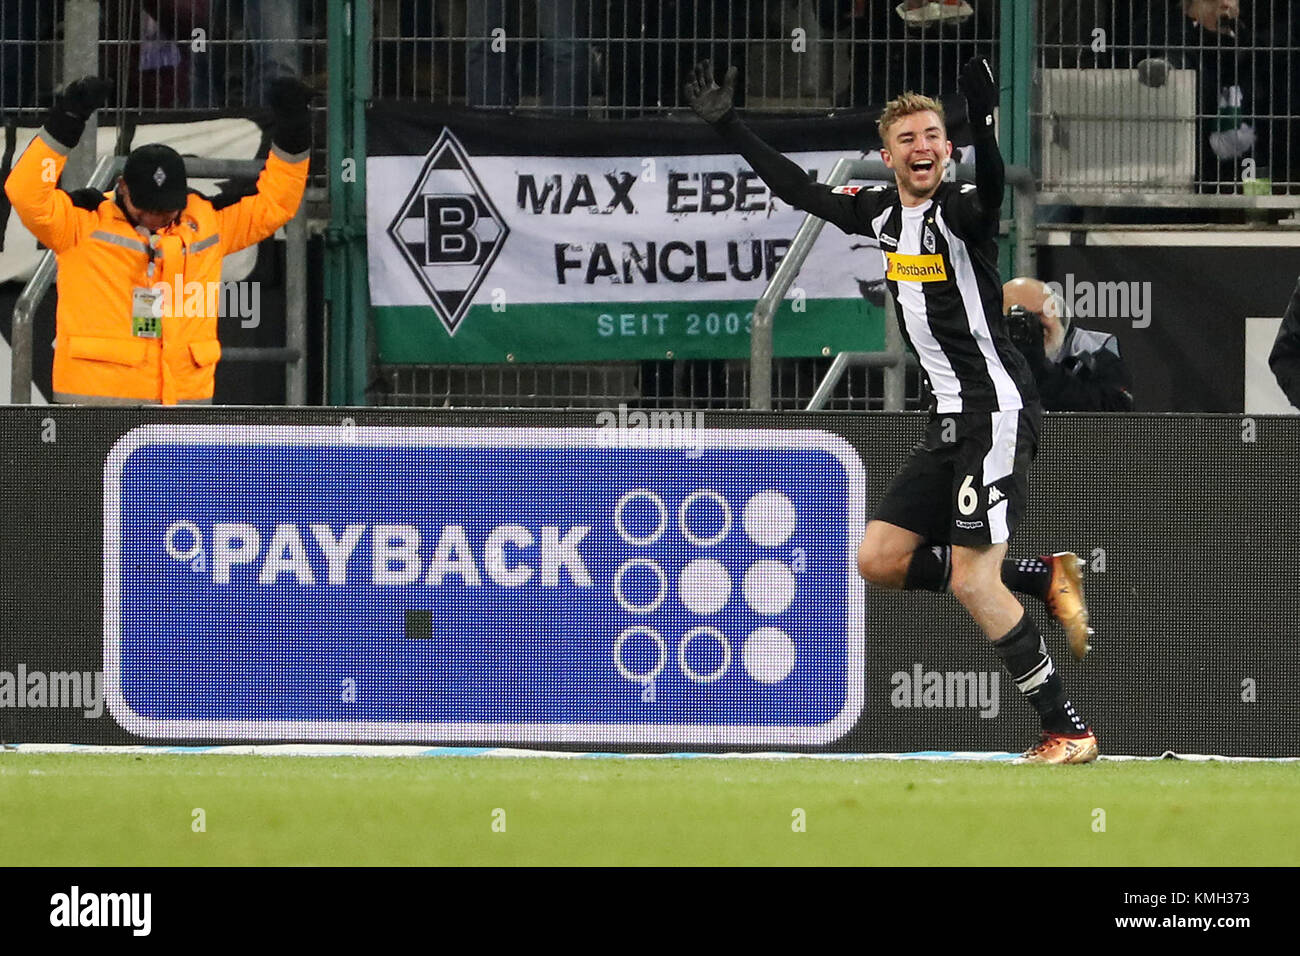 Moenchengladbach, Germany. 9th Dec, 2017. Christoph Kramer of Moenchengladbach celebrates after scoring during the Stock Photo